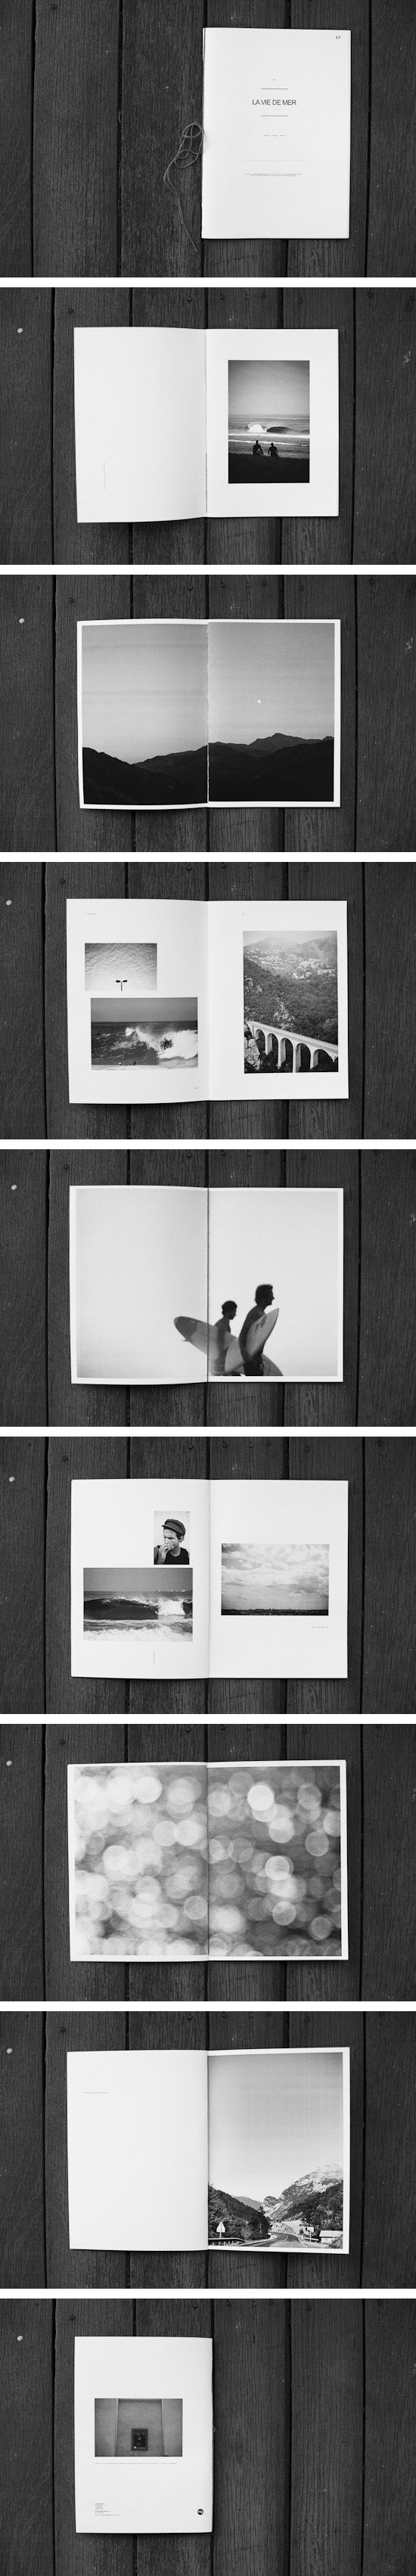 Black and white framed photographs with a white background. Layout is thoughtful and simple, attracts my eye greatly